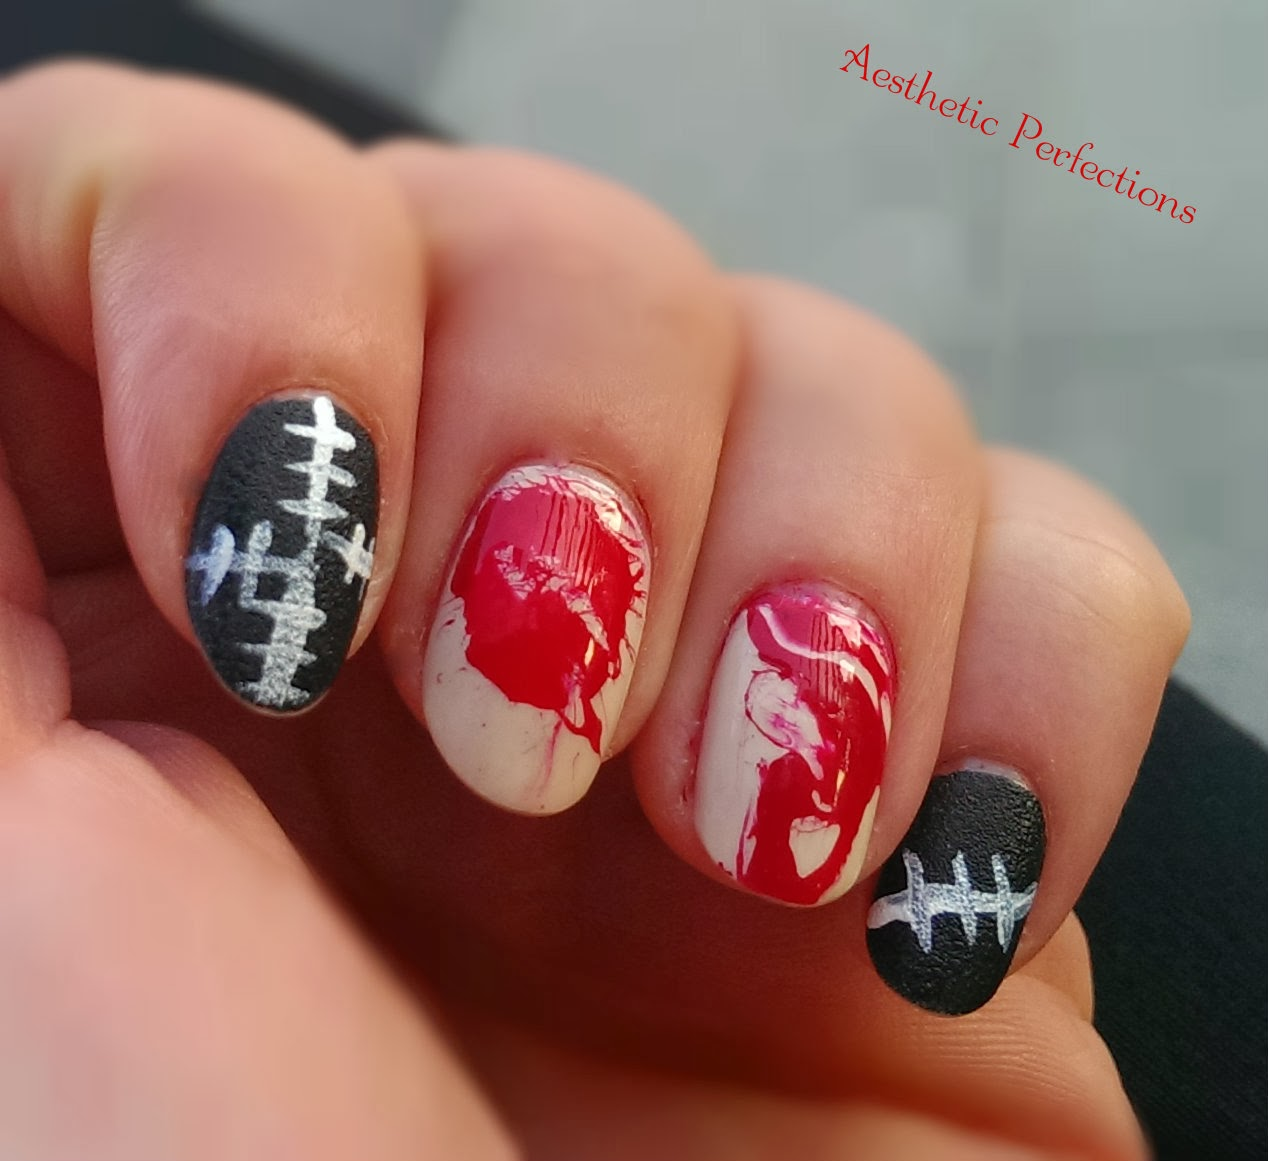 Aesthetic Perfections Halloween Nails